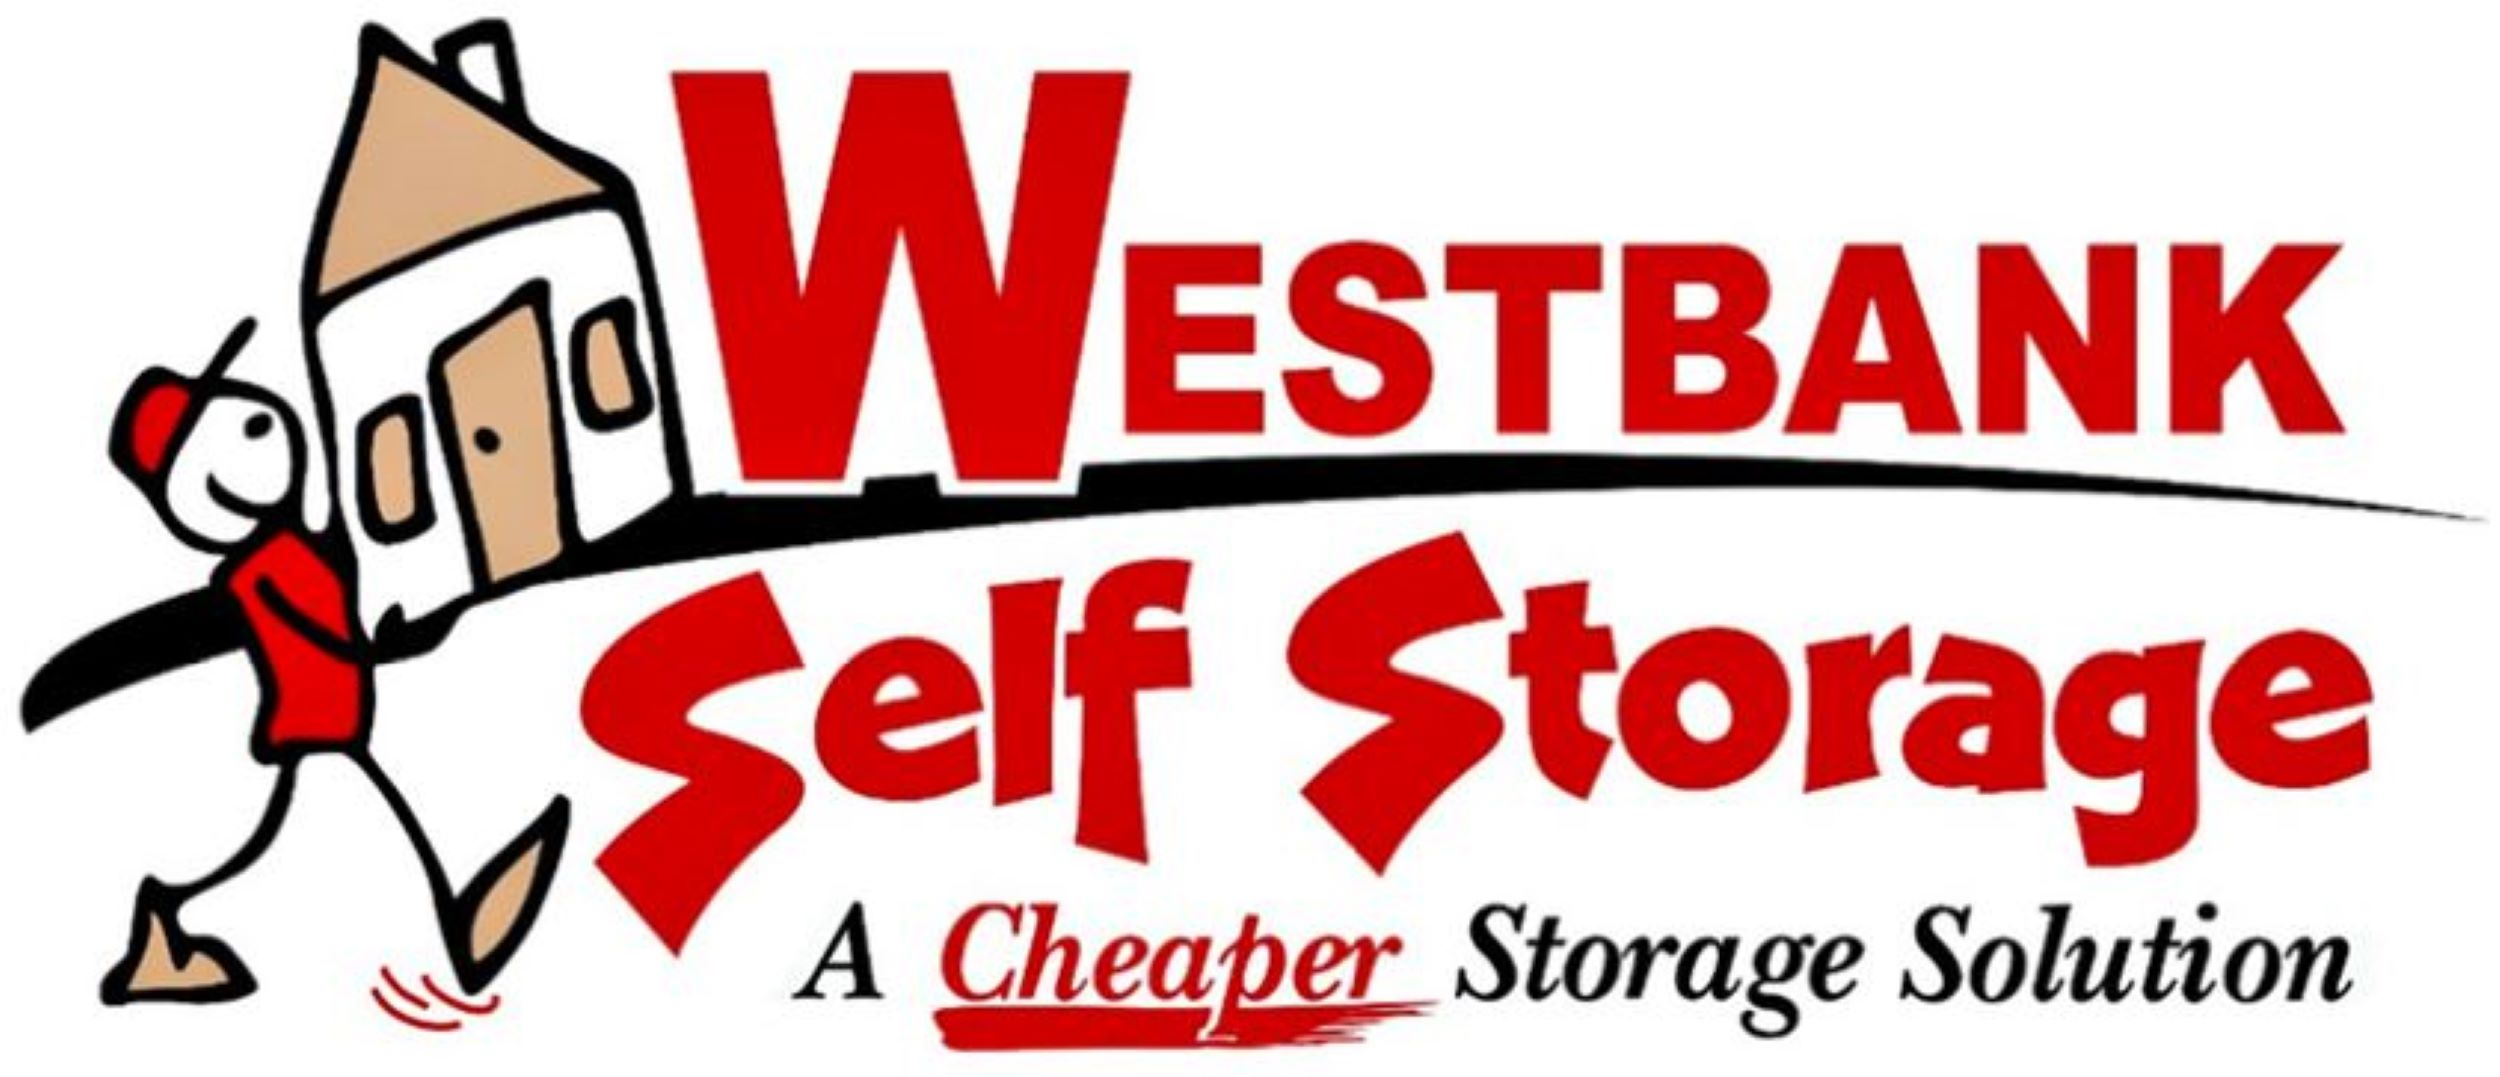 Westbank Self Storage